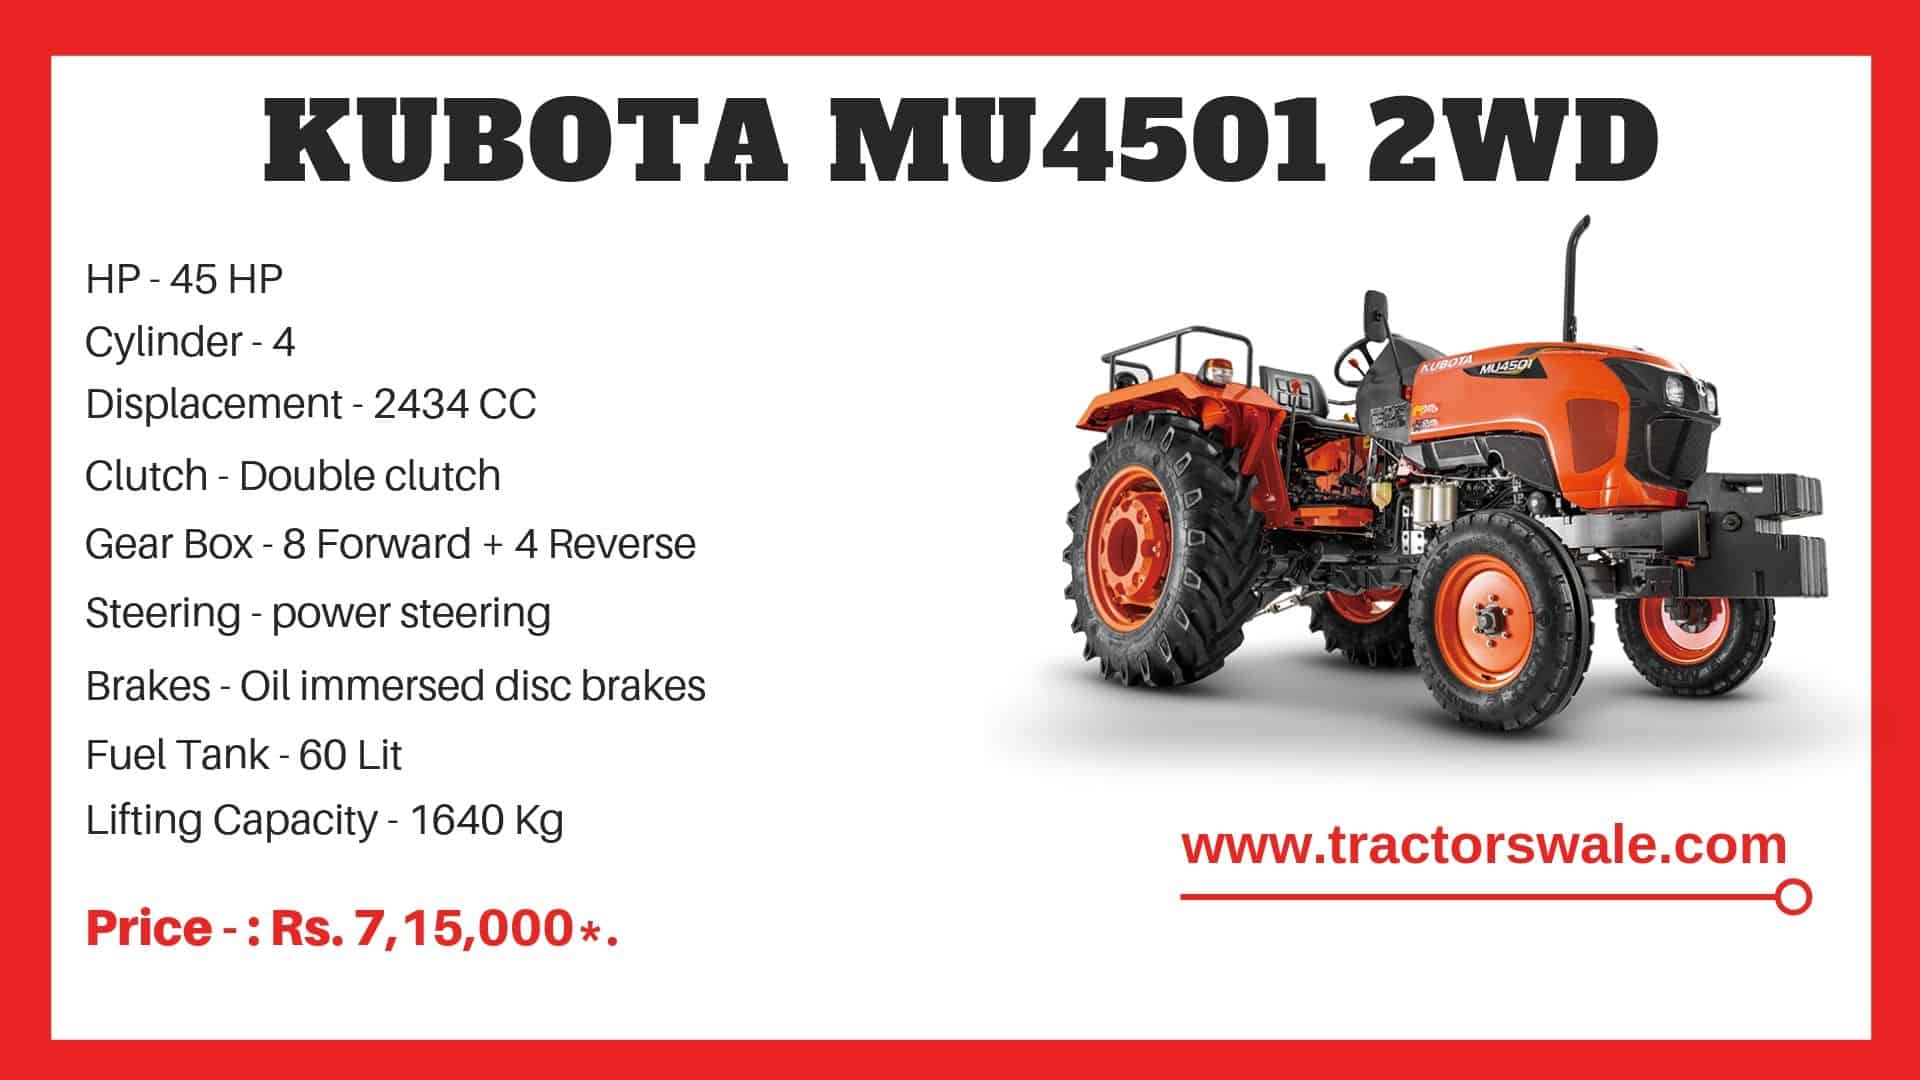 Kubota MU4501 2WD tractor specifications